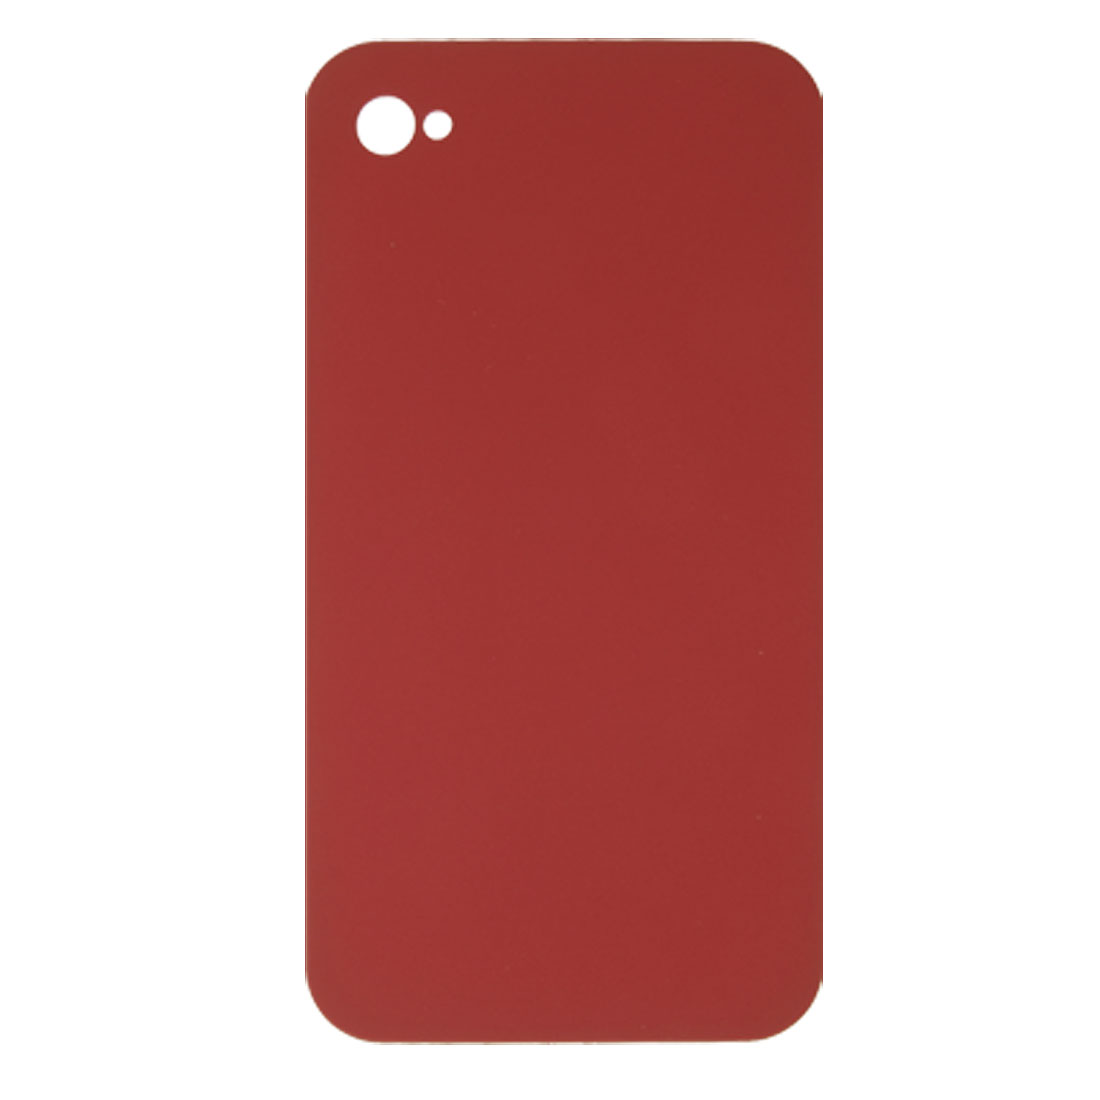 Red Rubberized Hard Plastic Case Cover for iPhone 4 4G